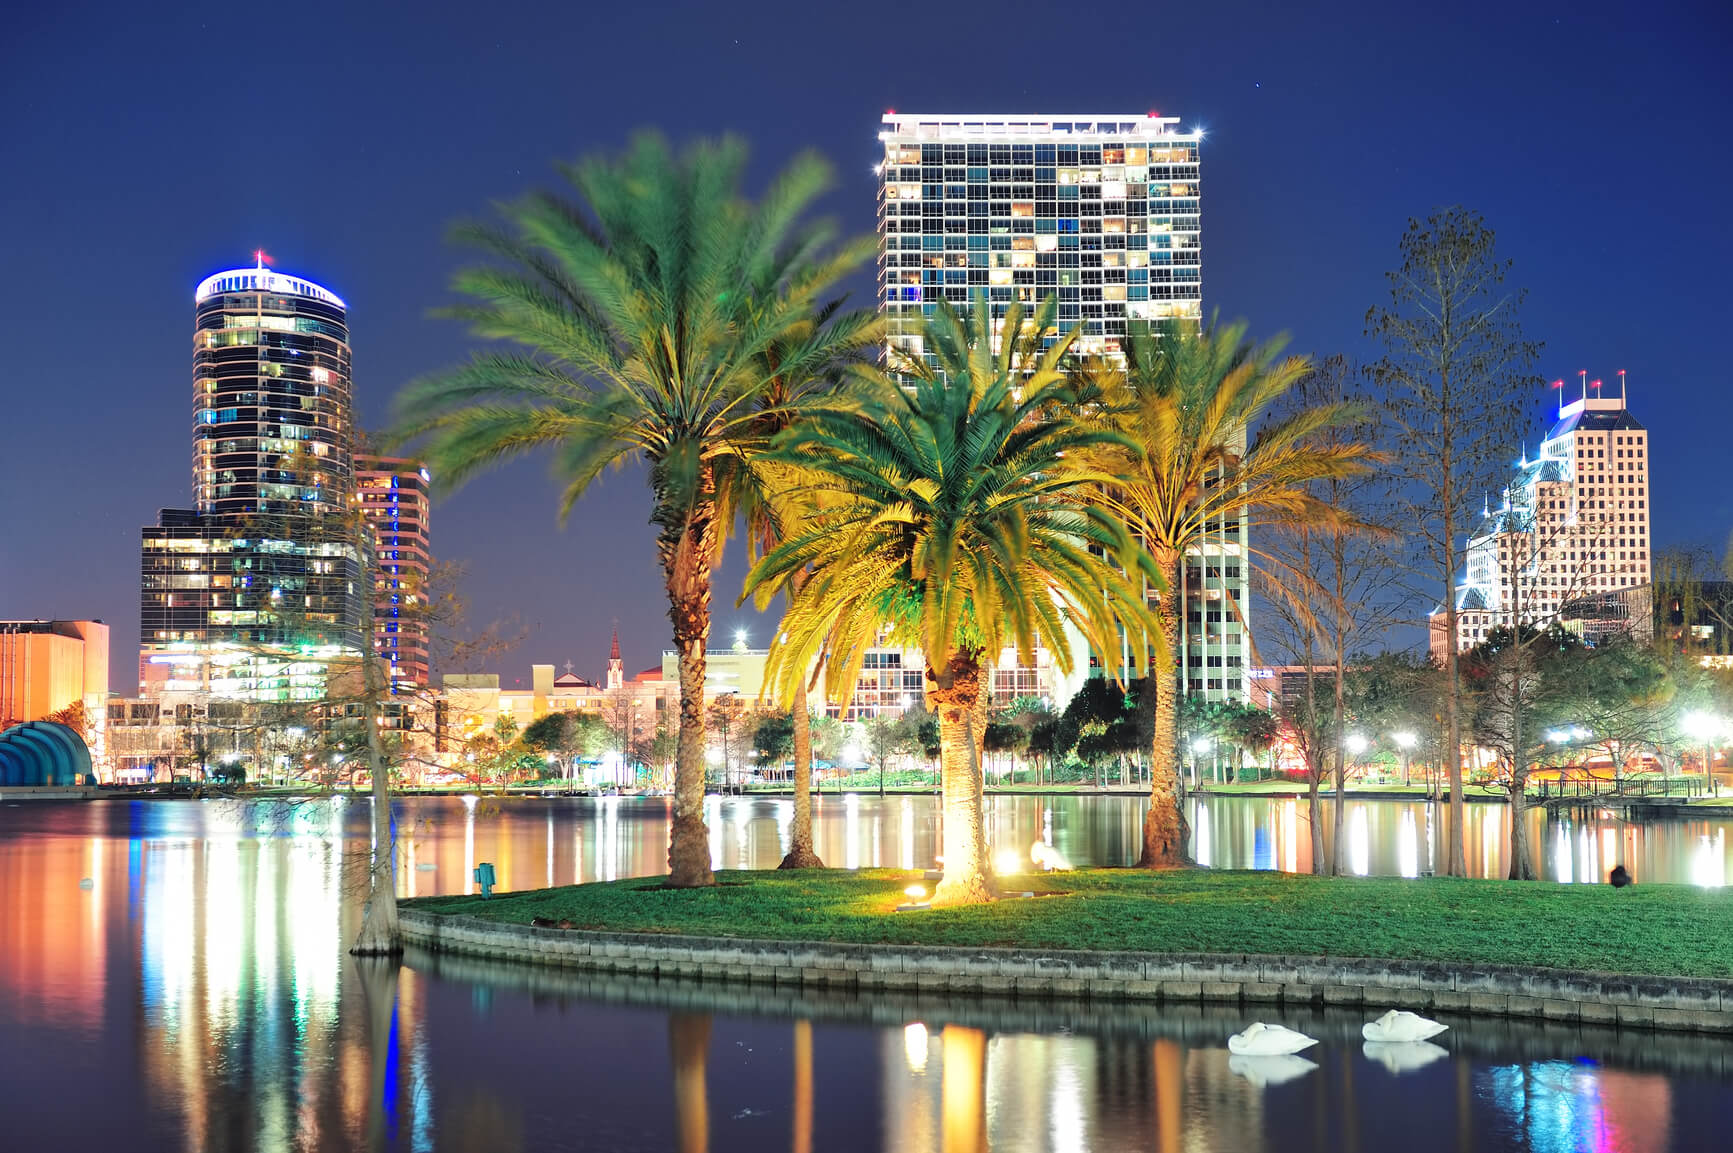 Vancouver, Canada to Orlando, Florida for only $265 CAD roundtrip (Oct-Apr dates)